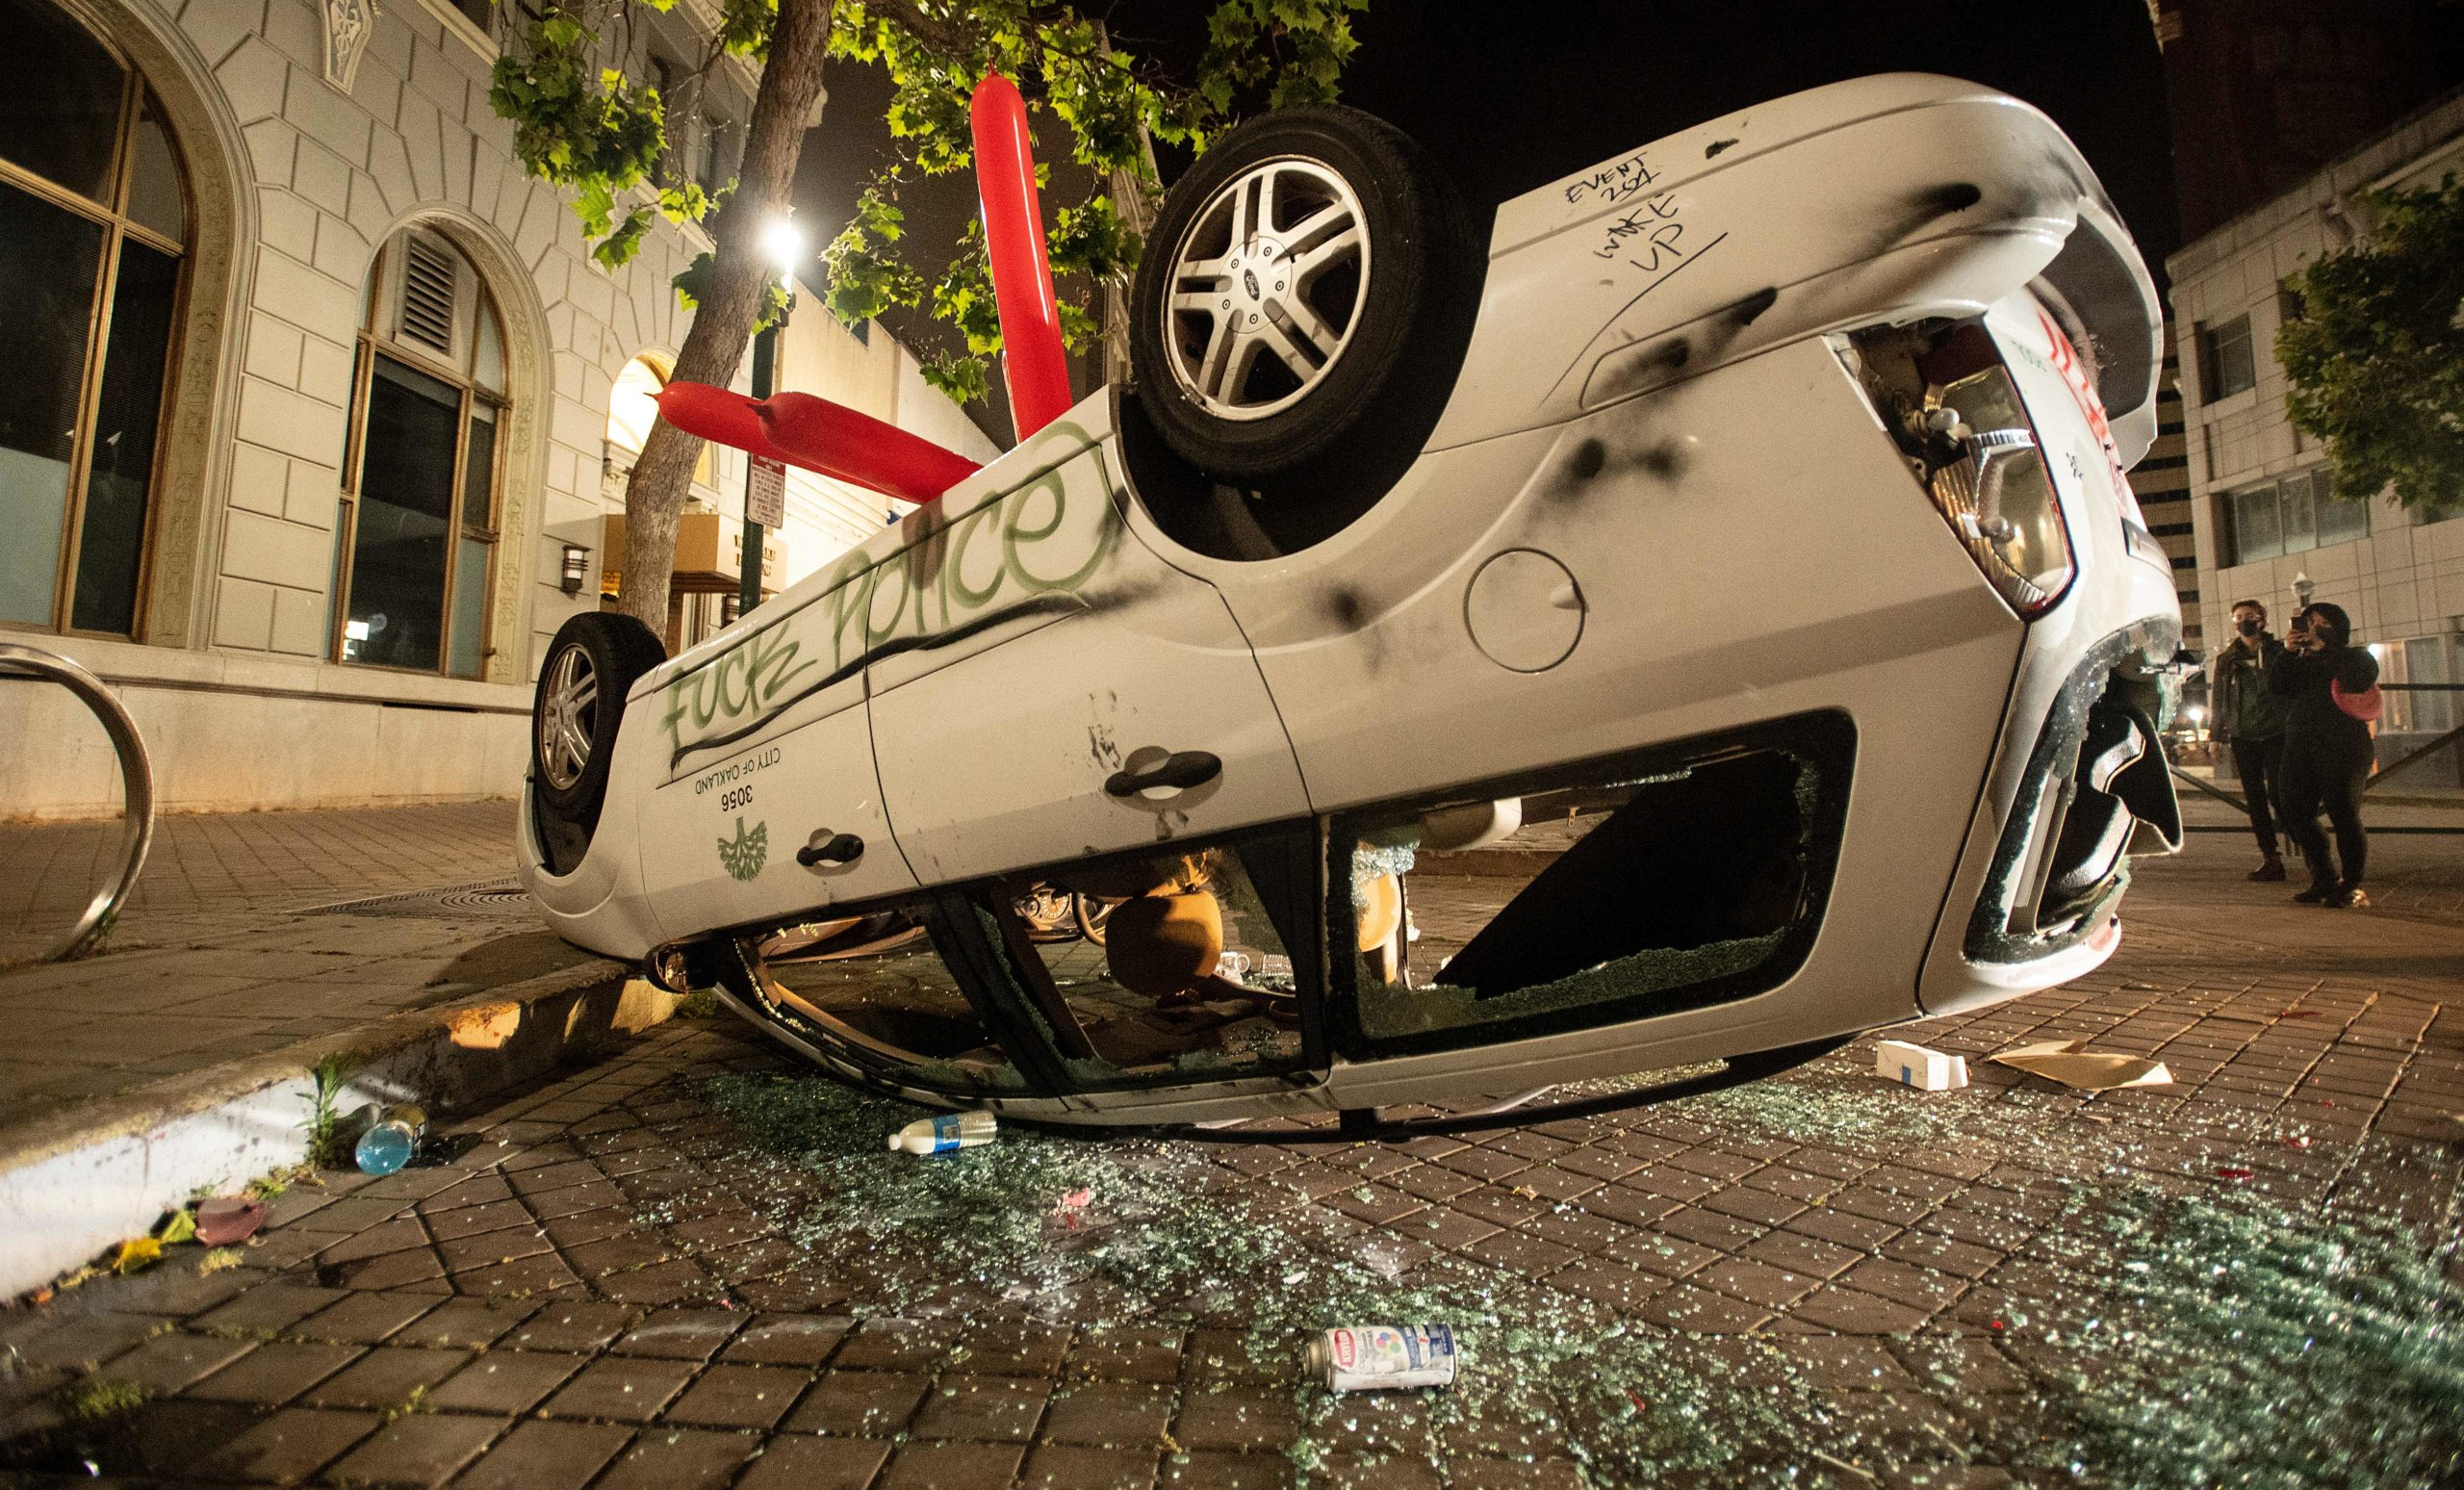 A vandalized car is flipped upside down as protesters face off against police in Oakland, California on May 29, 2020, during protests over the death of George Floyd. (Josh Edelson/AFP via Getty Images)